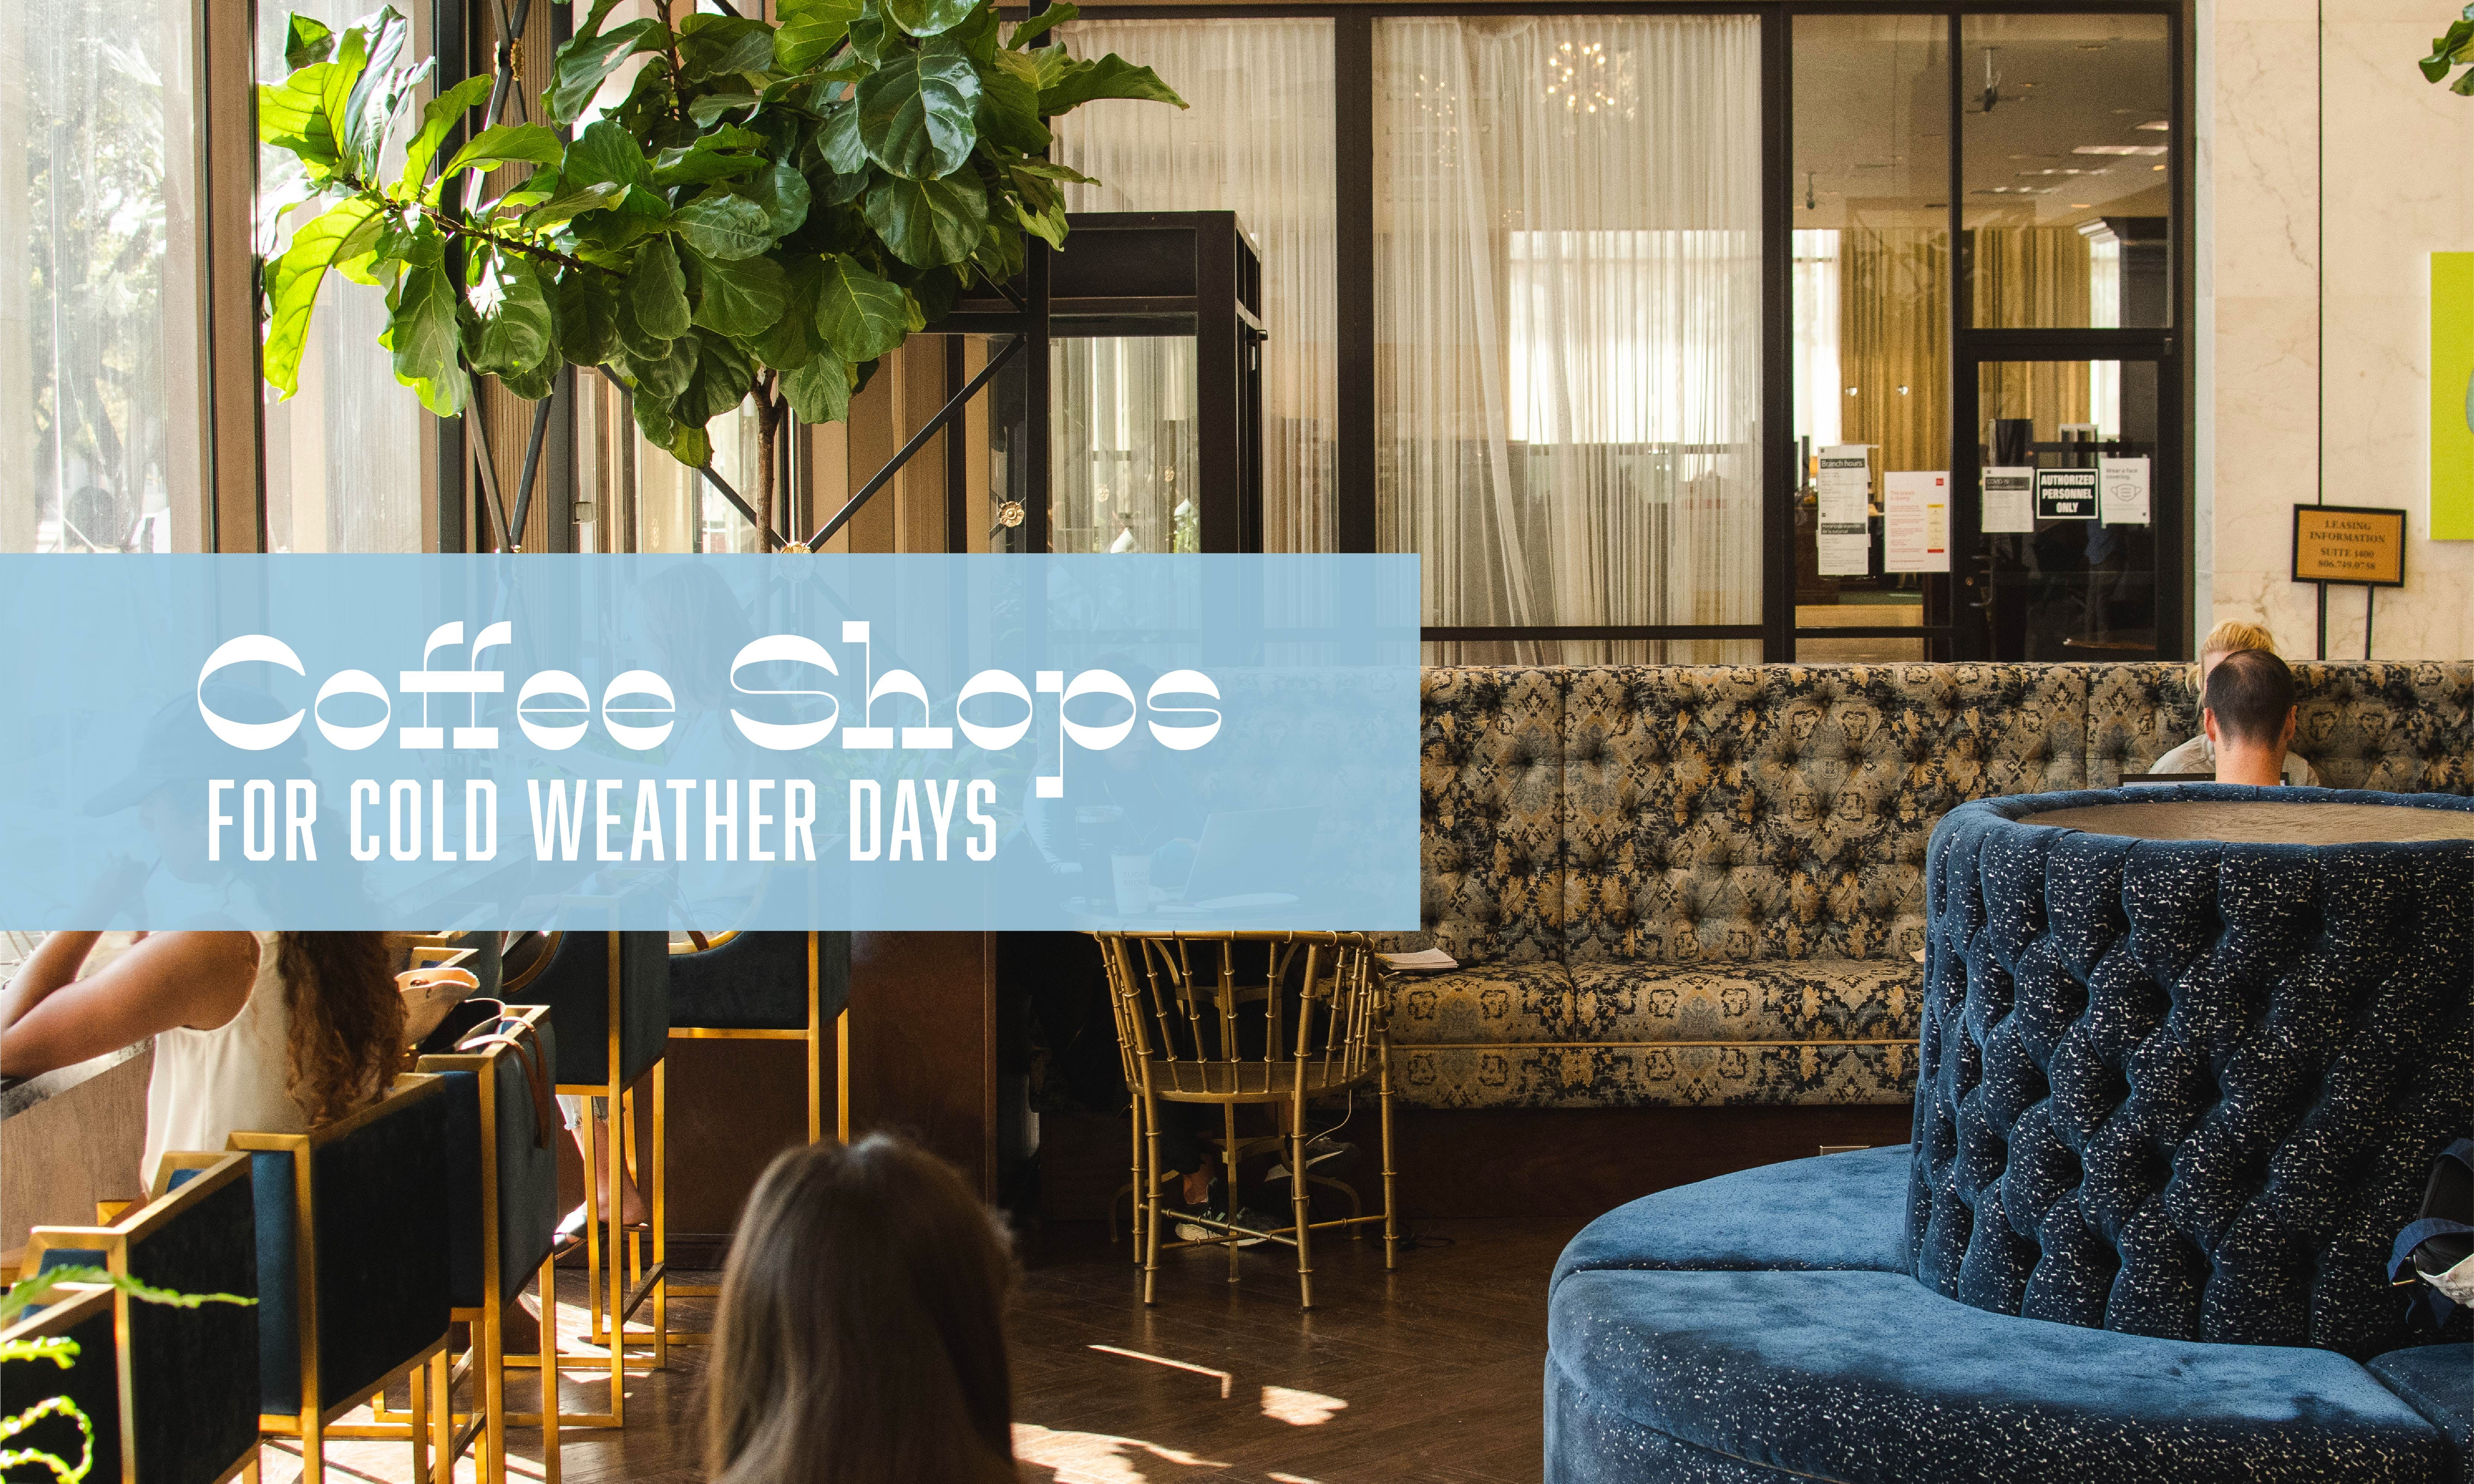 Coffee Shops for Cold Weather Days cover image